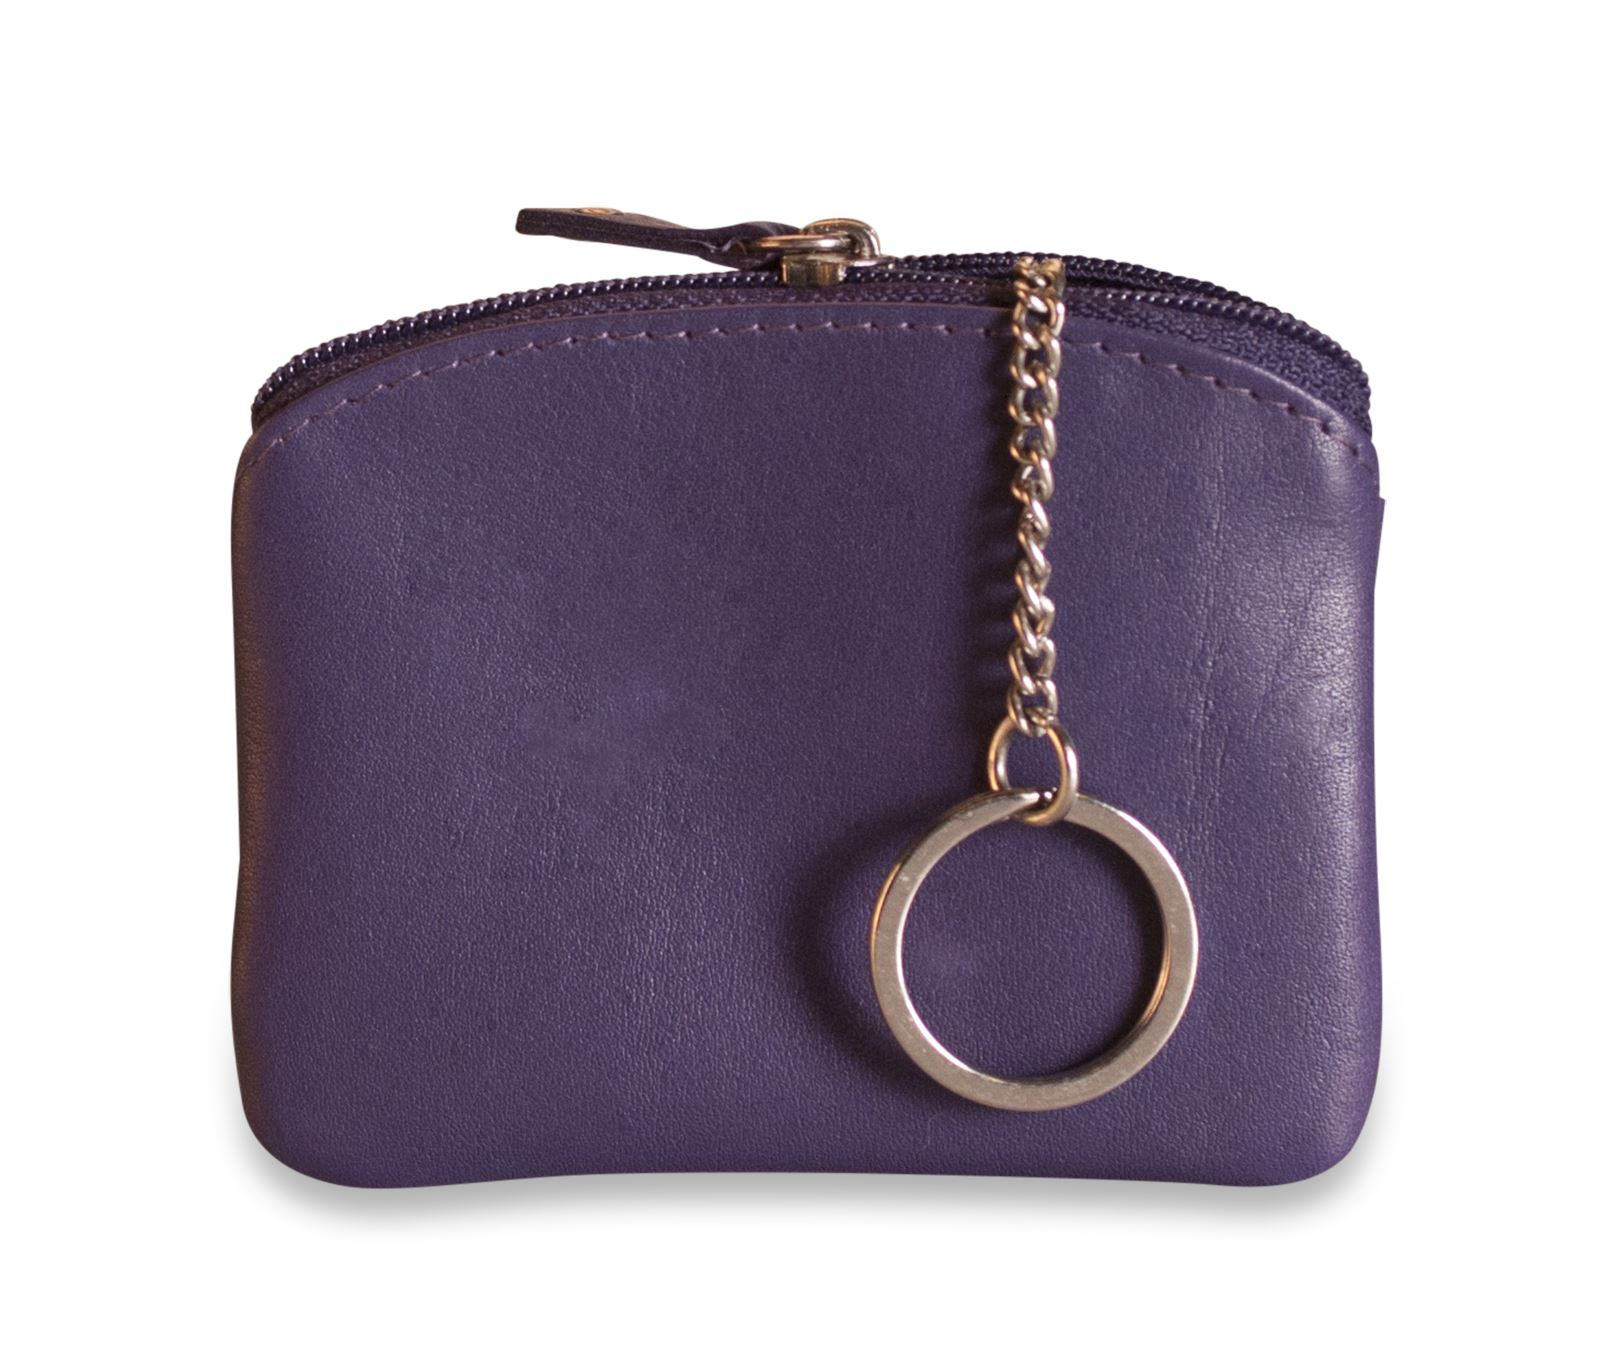 how to get scuffs out of leather purse